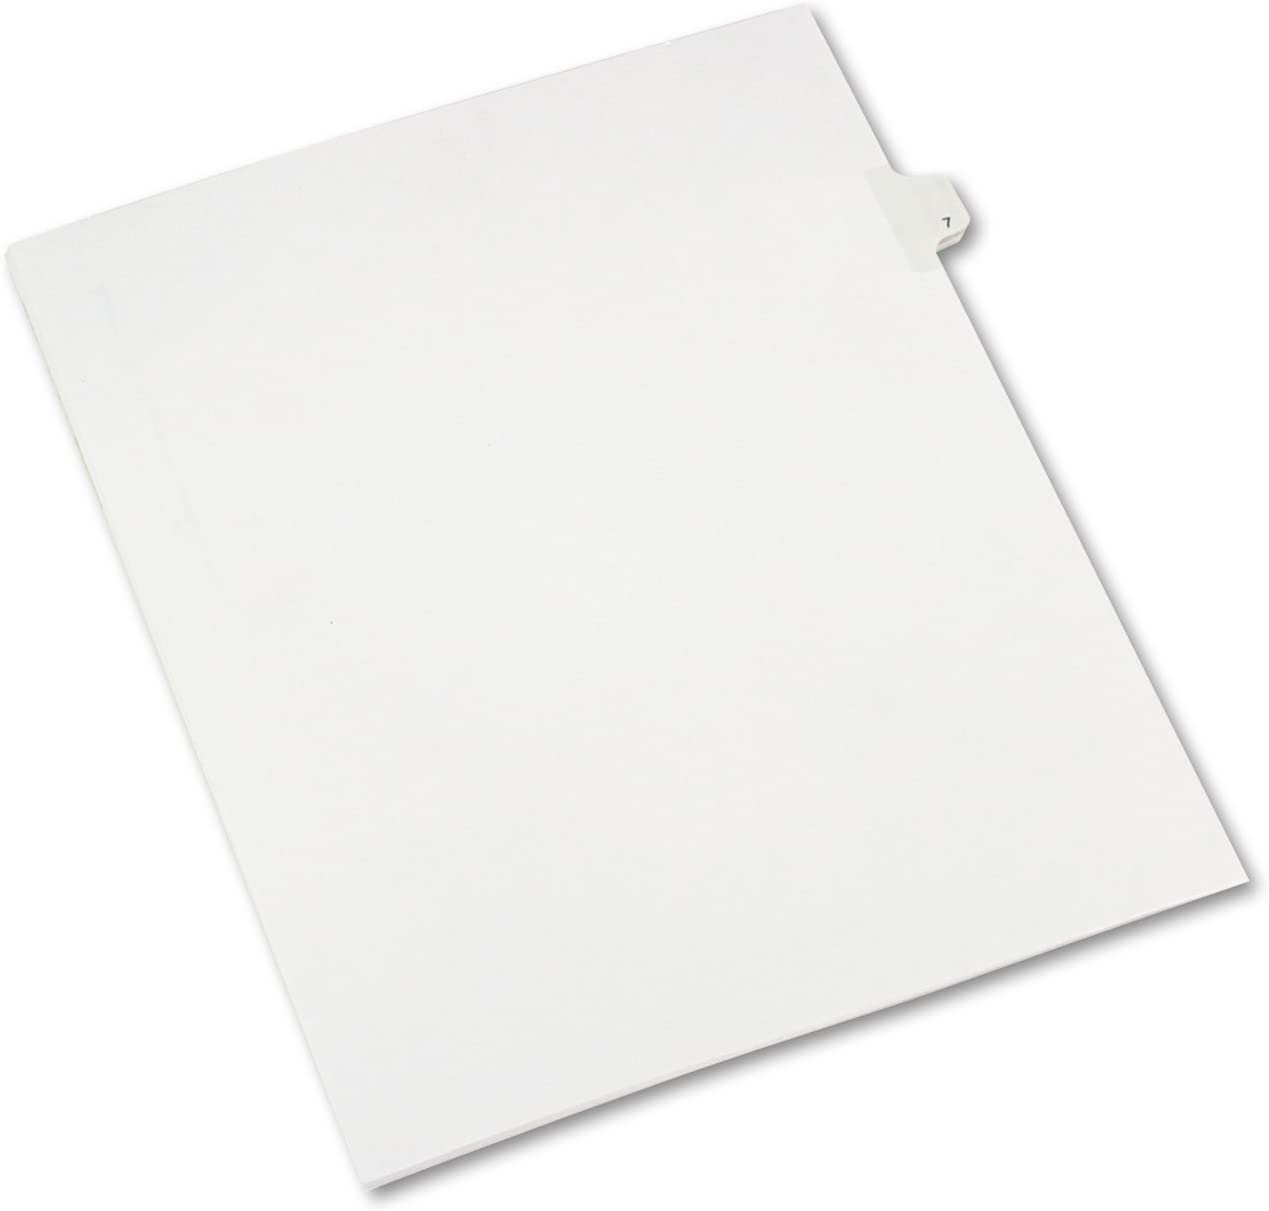 Excellent Avery 82205 Allstate-Style Legal Ranking TOP16 Exhibit Side Title Tab Divider